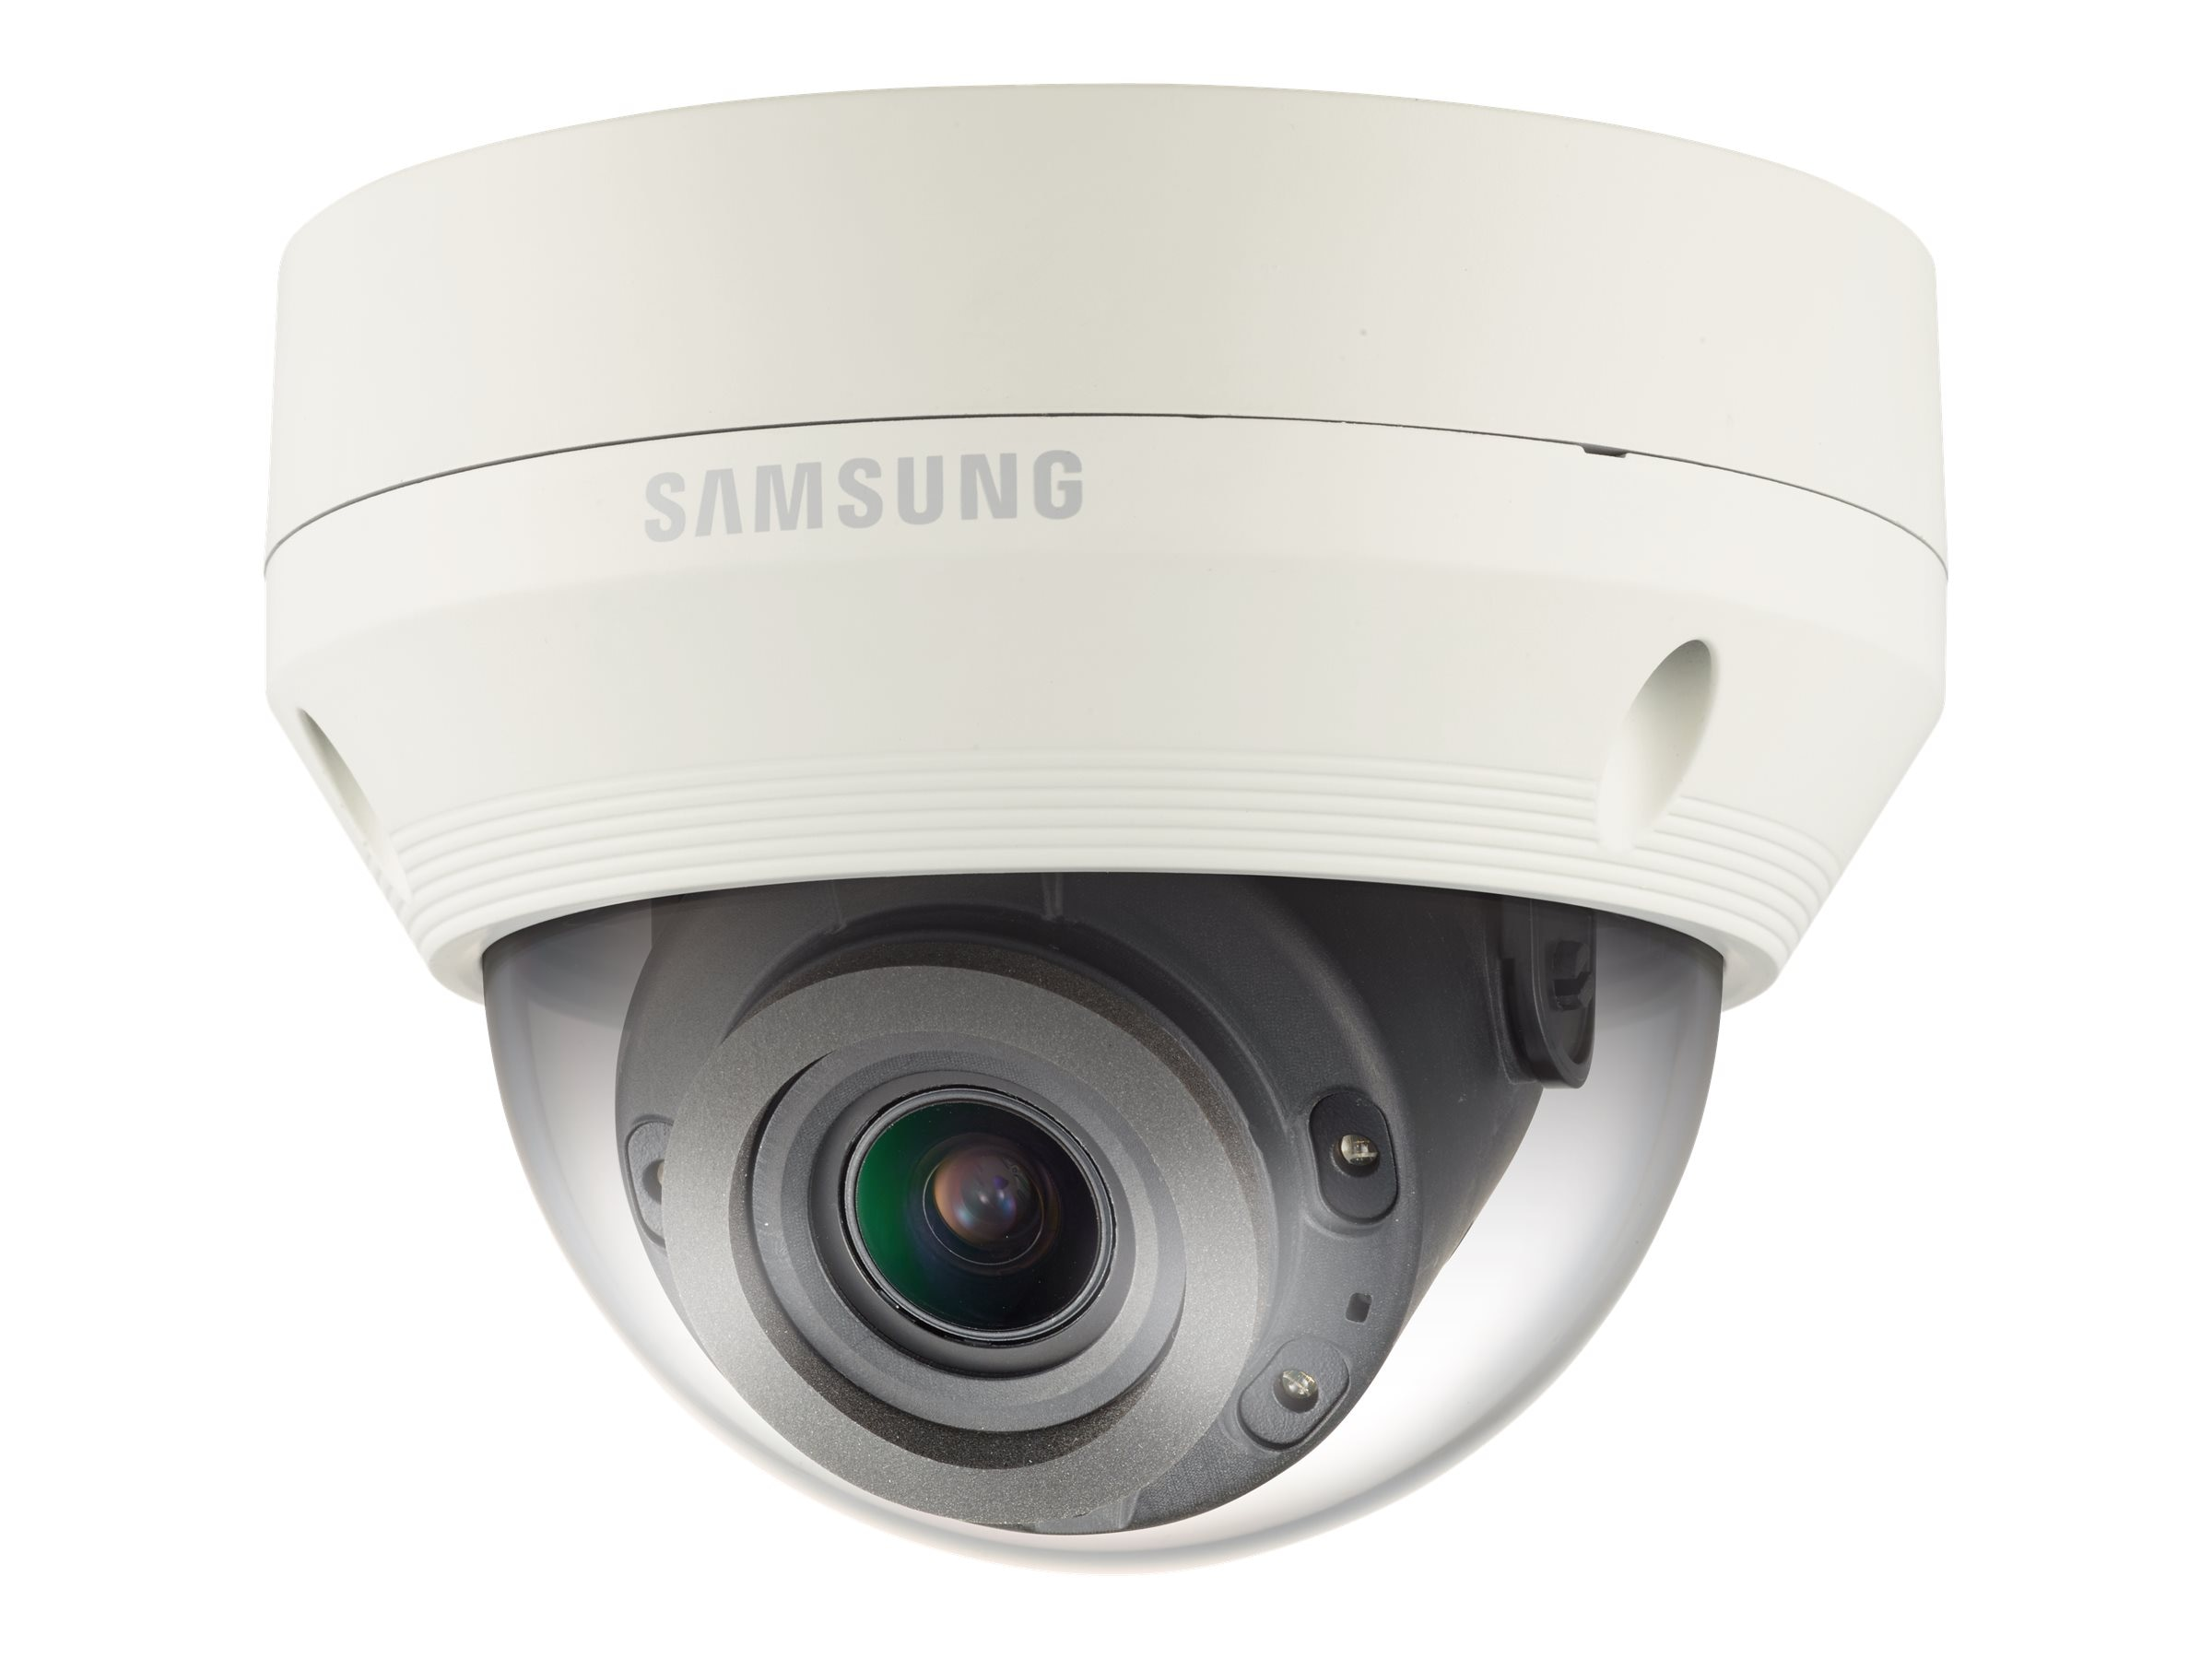 Samsung 2MP Vandal-Resistant Full HD Network IR Dome Camera with 2.8-12mm Lens